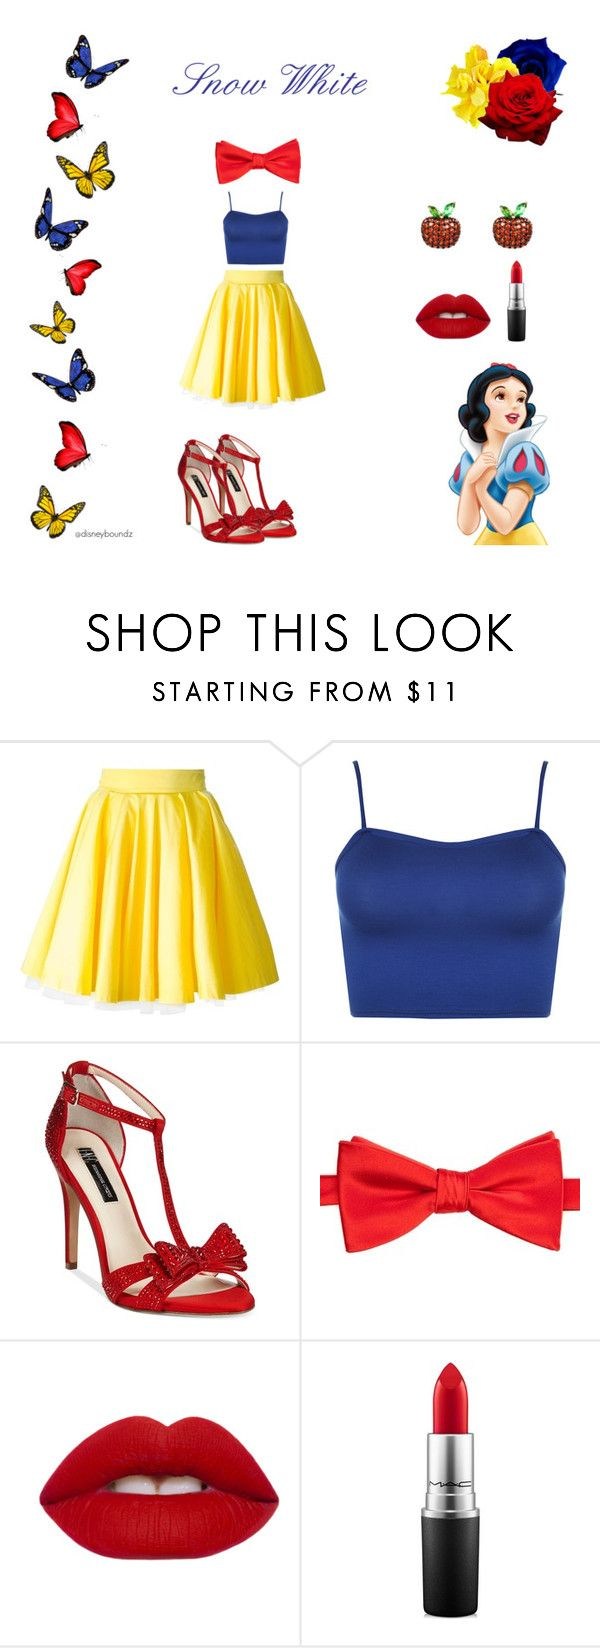 """Snow White"" by disneyboundz ❤ liked on Polyvore featuring Philipp Plein, WearAll, INC International Concepts, Saddlebred, Lime Crime, MAC Cosmetics, disney, snowwhite, disneybound and snowwhitedisneybound"